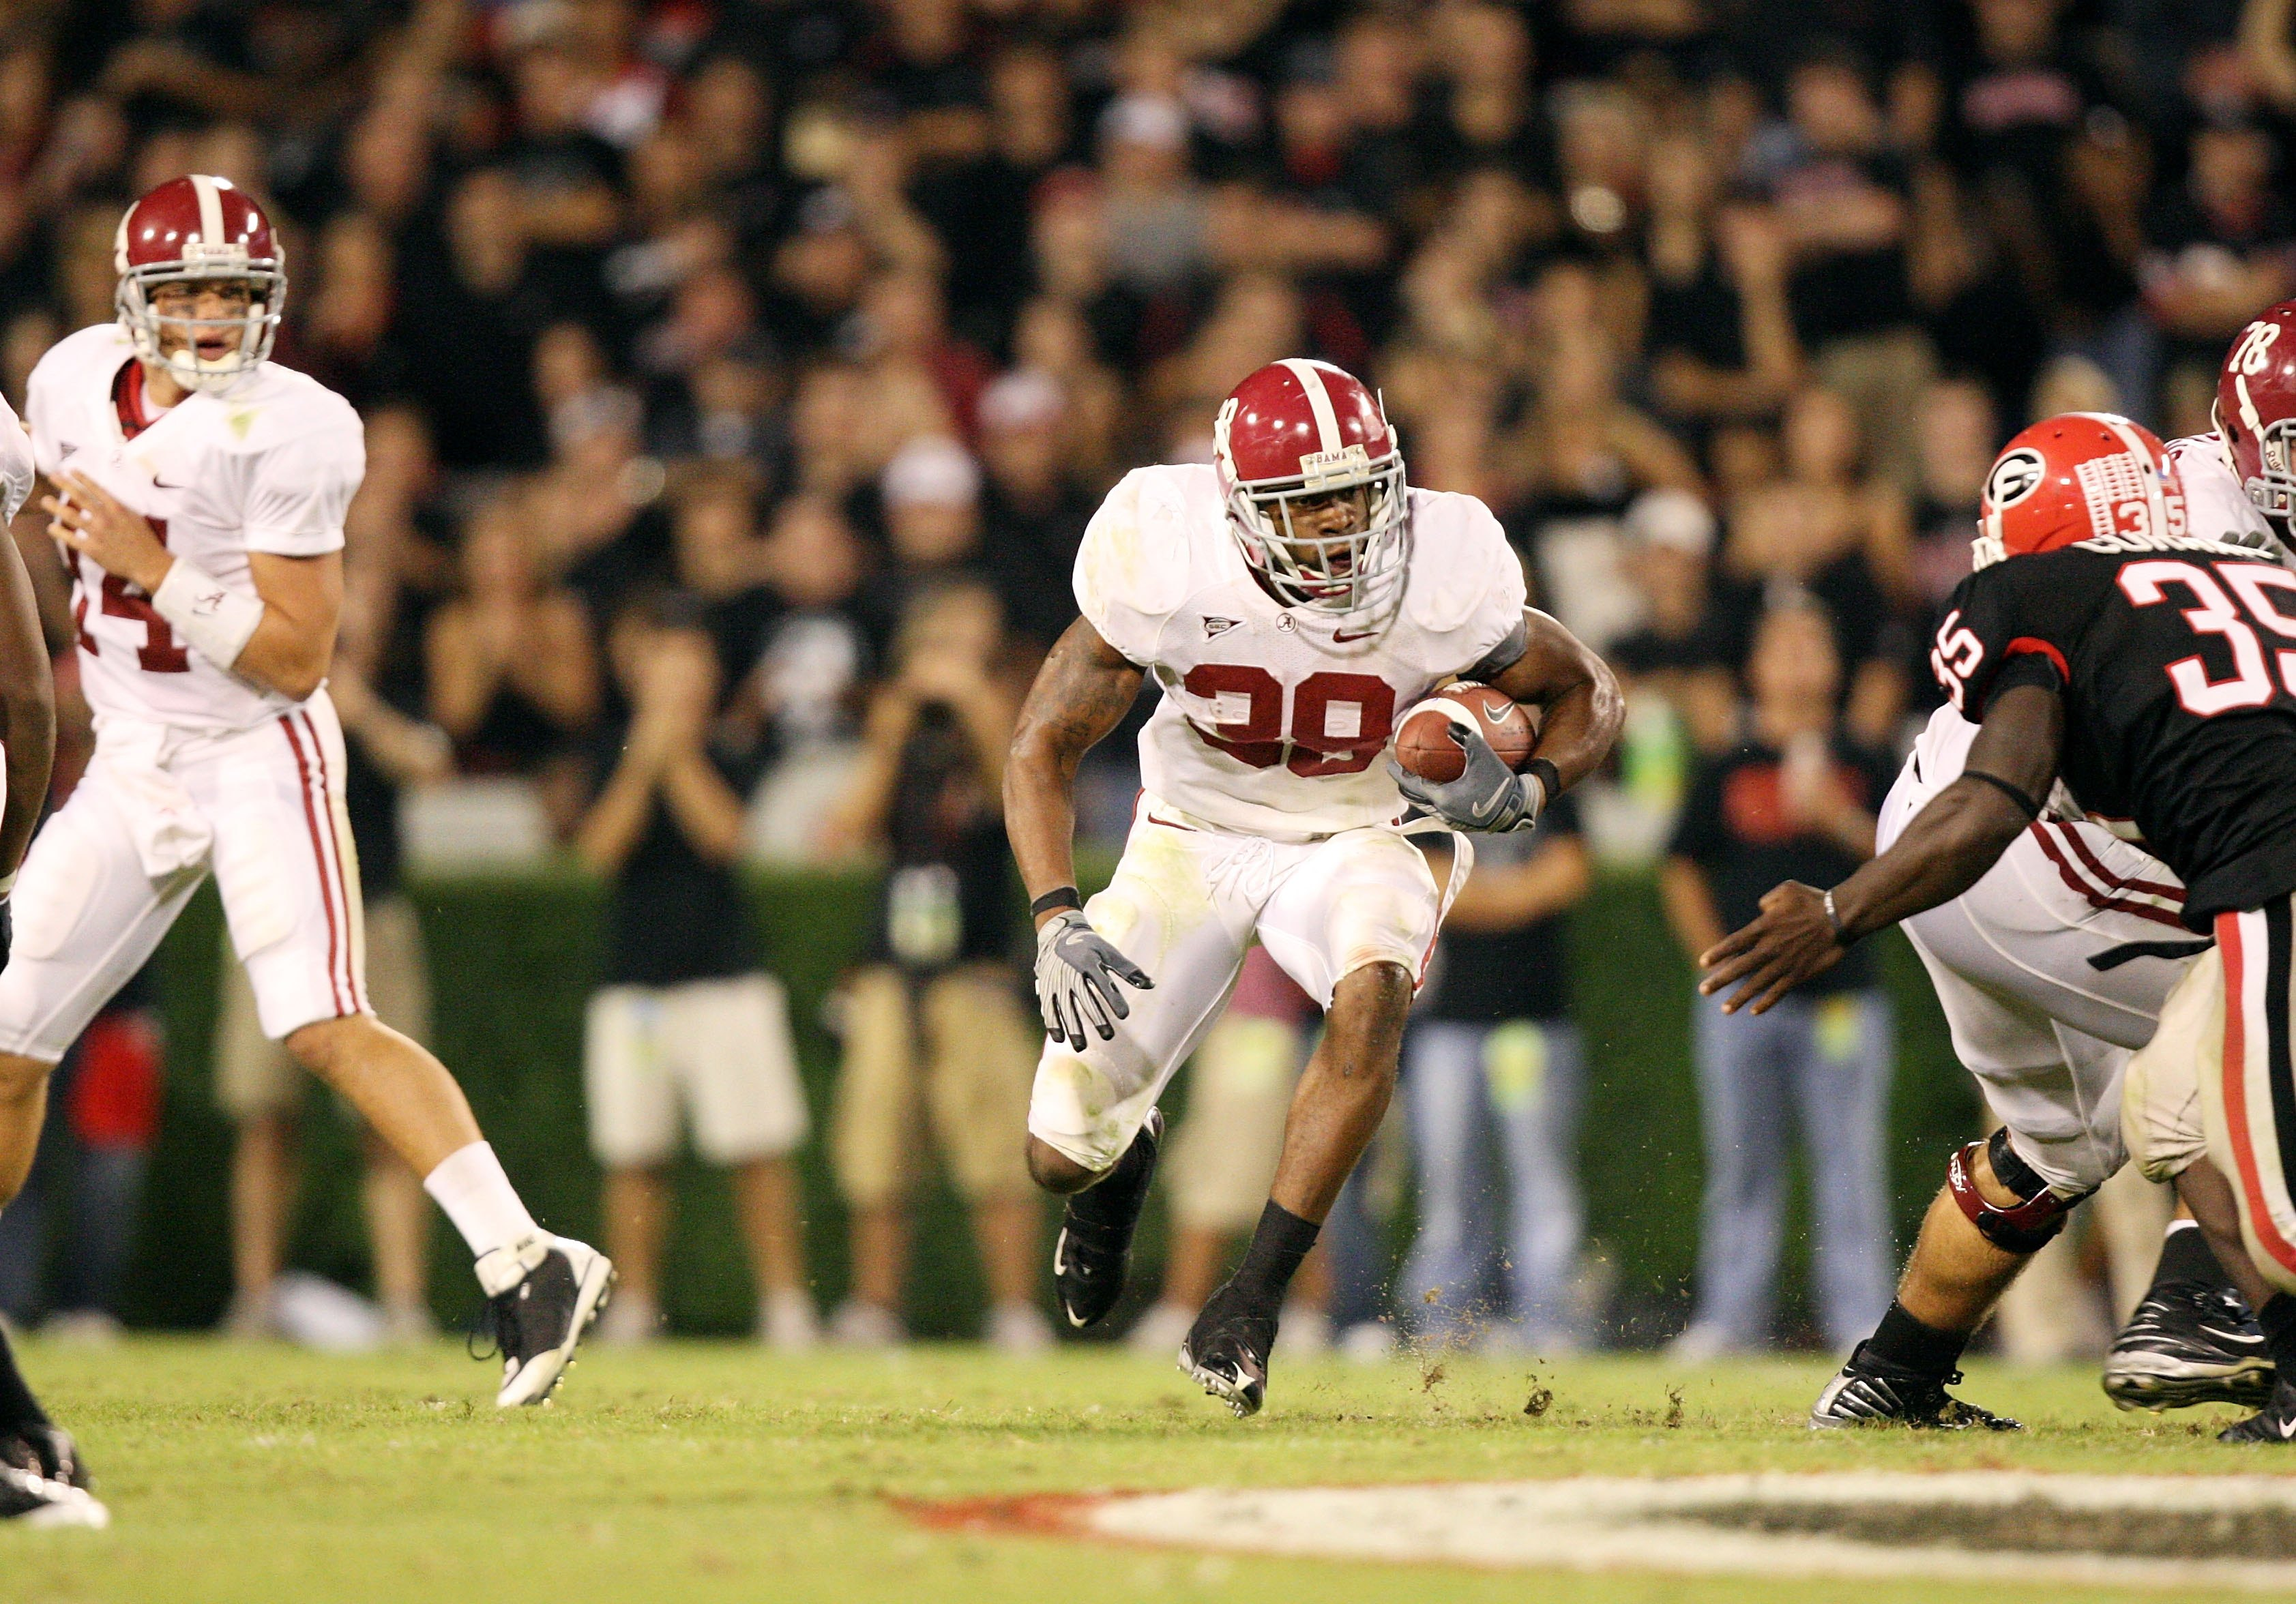 ATHENS, GA - SEPTEMBER 27:  Running back Donta Hightower #30 of the Alabama Crimson Tide takes the hand-off from quarterback John Parker Wilson and looks for room to run behind a block by Mike Johnson #78 while taking on the Georgia Bulldogs at Sanford St